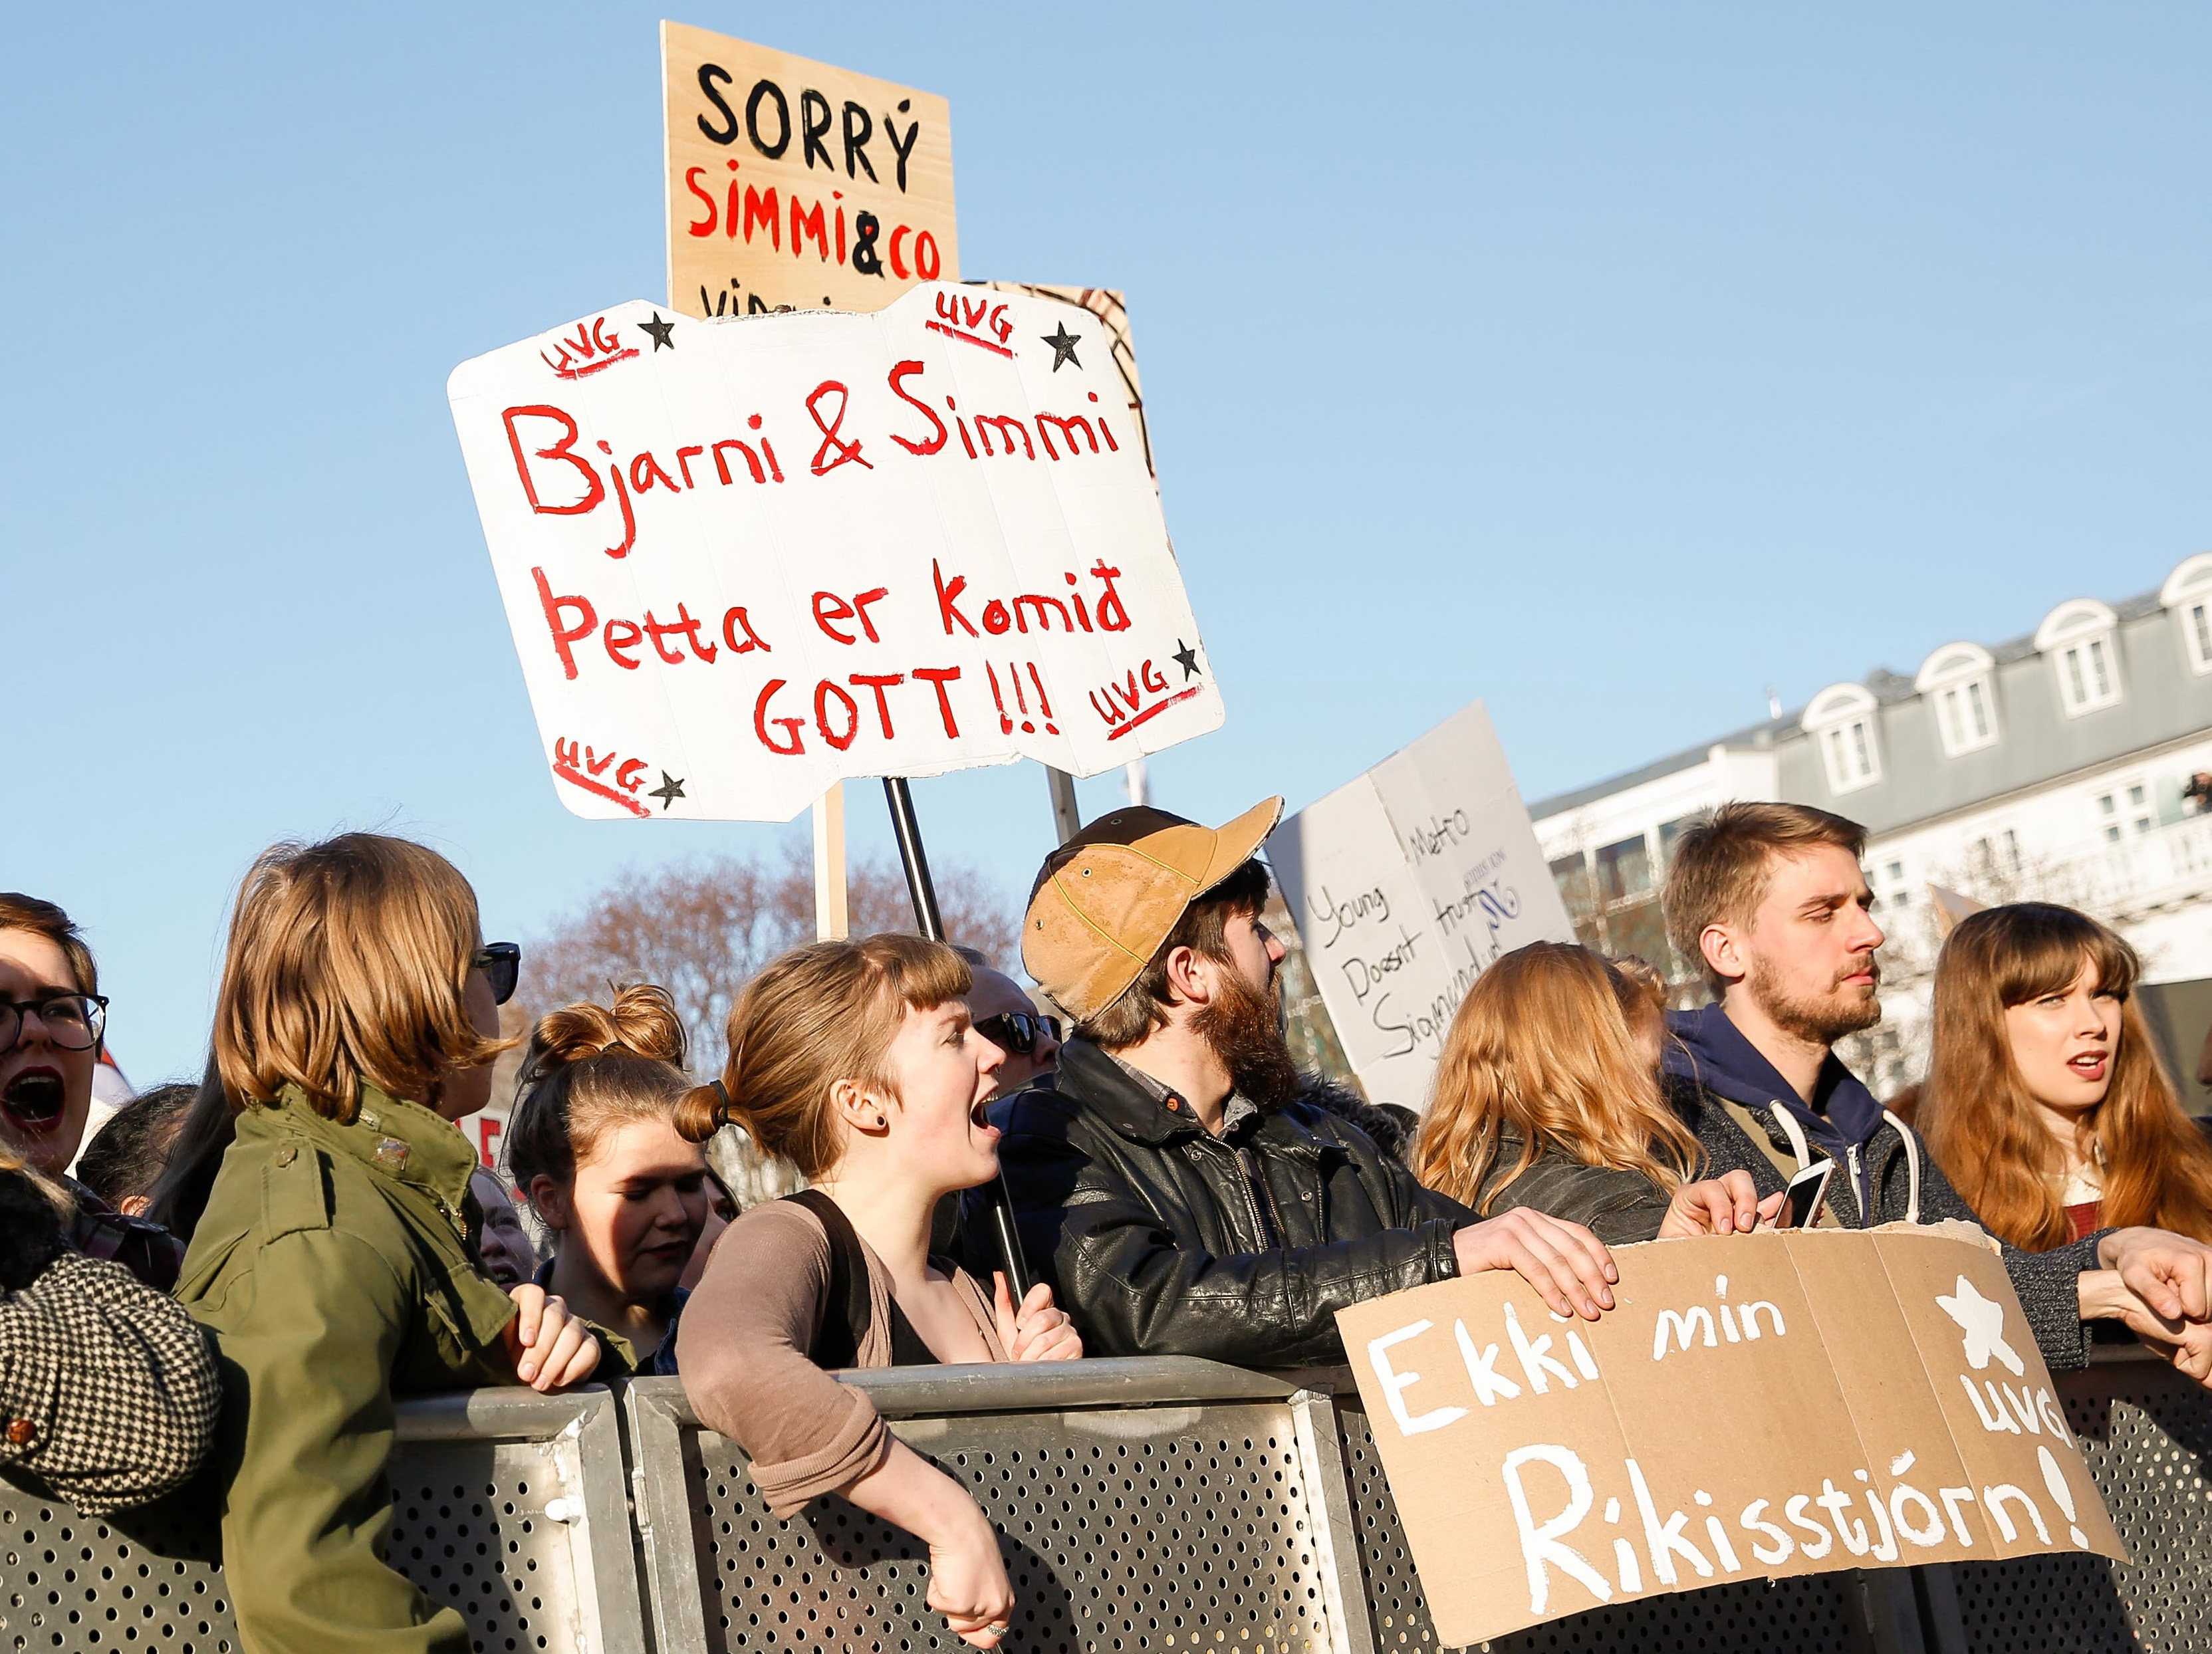 People gather to demonstrate against Iceland's prime minister Sigmundur David Gunnlaugsson, in Reykjavik on Monday April 4, 2016.